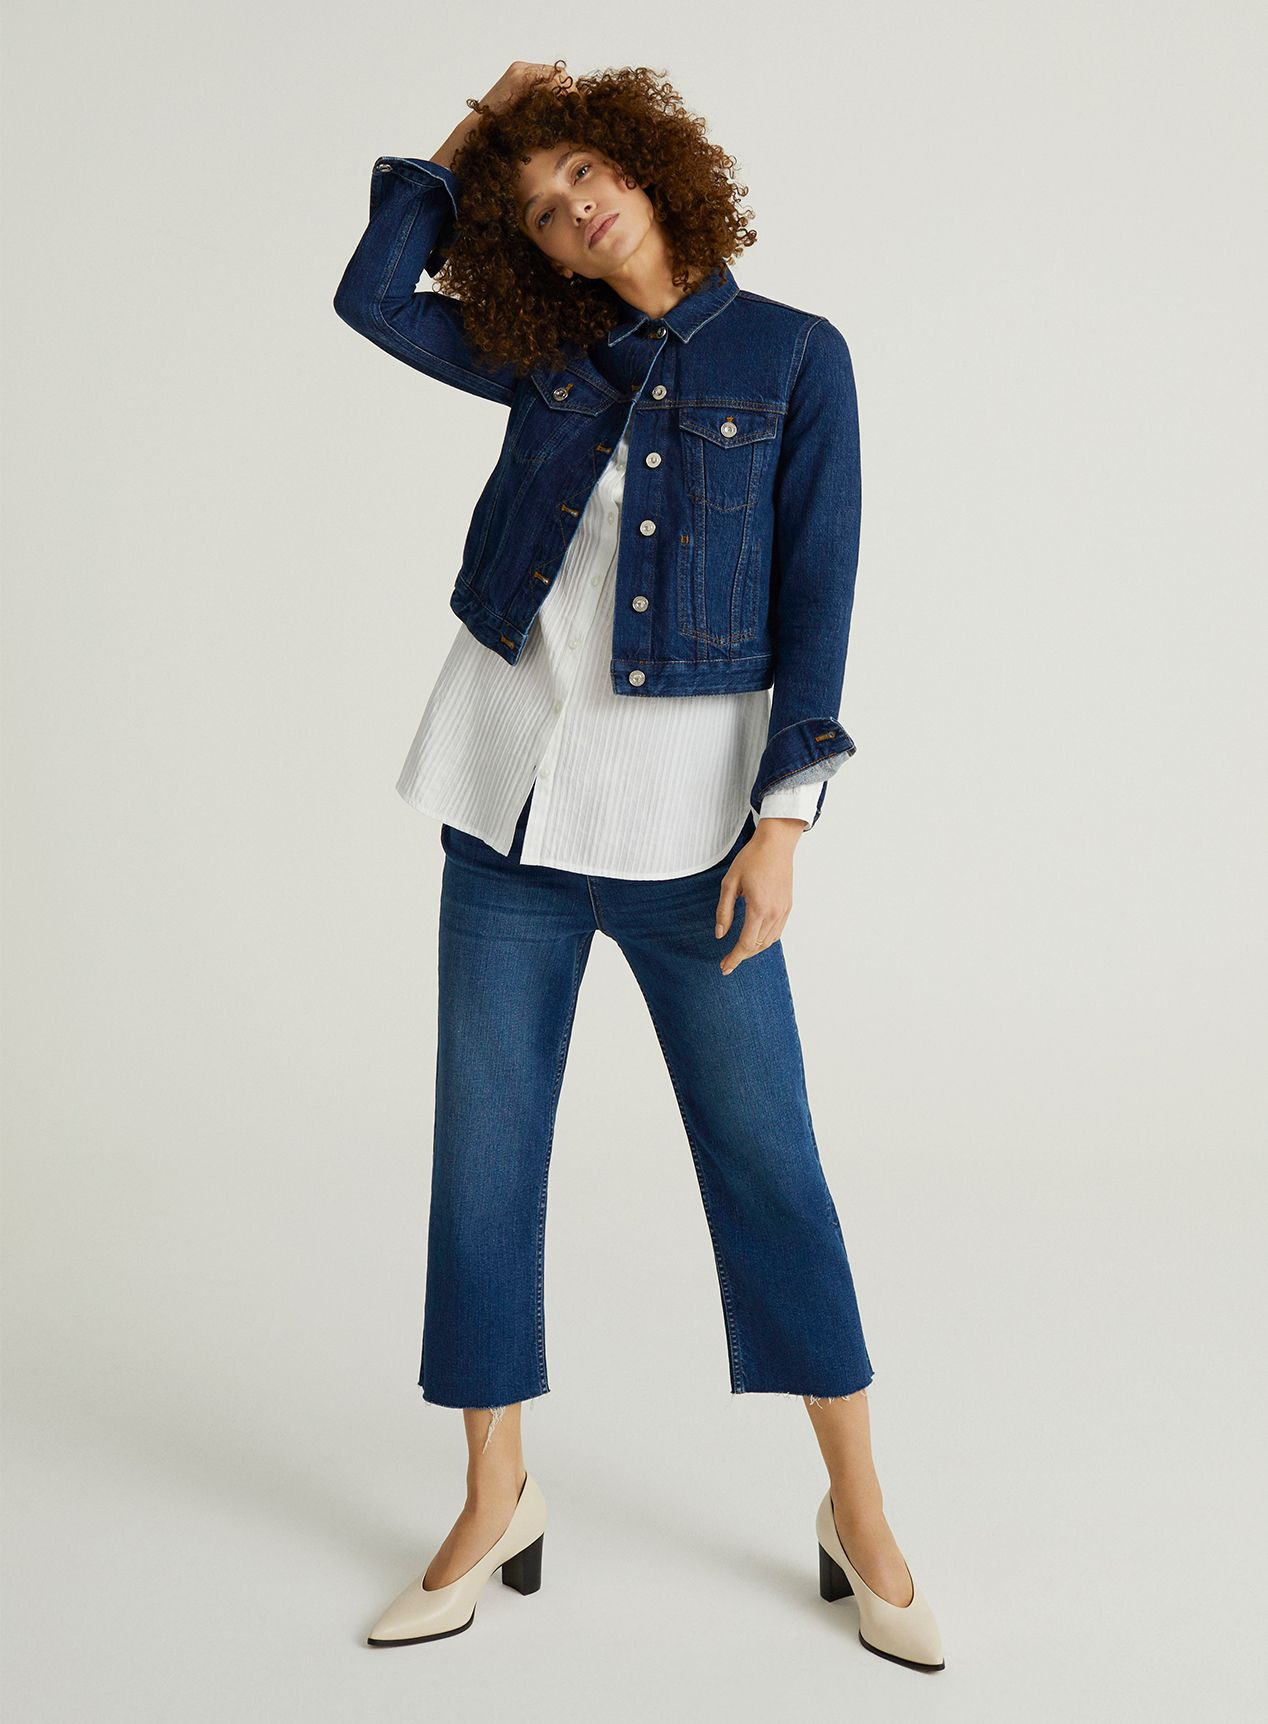 John Lewis & Partners Denim - The Cropped Jean